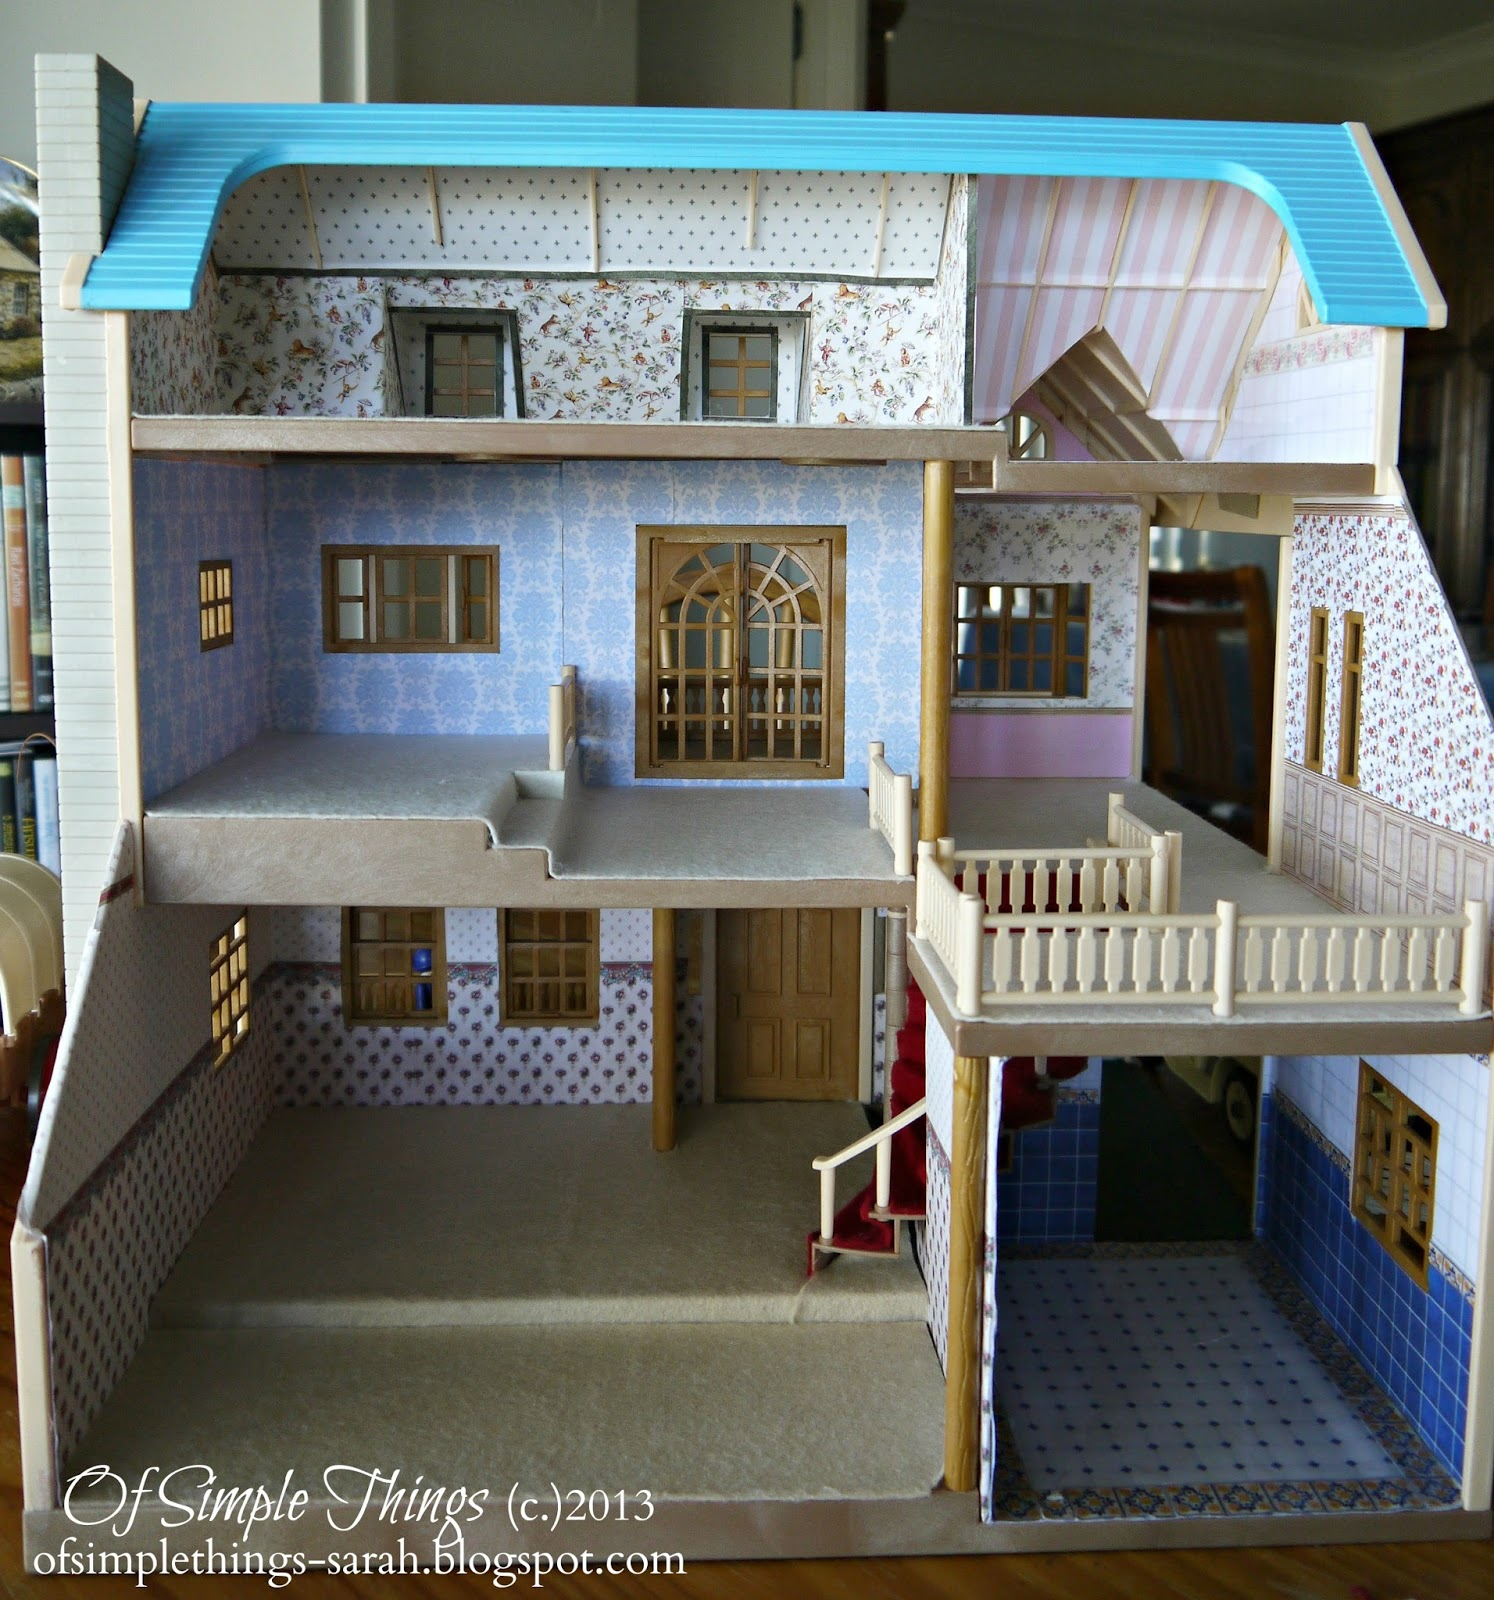 Best Of Simple Things Dollhouse Decorating Part 1 This Month